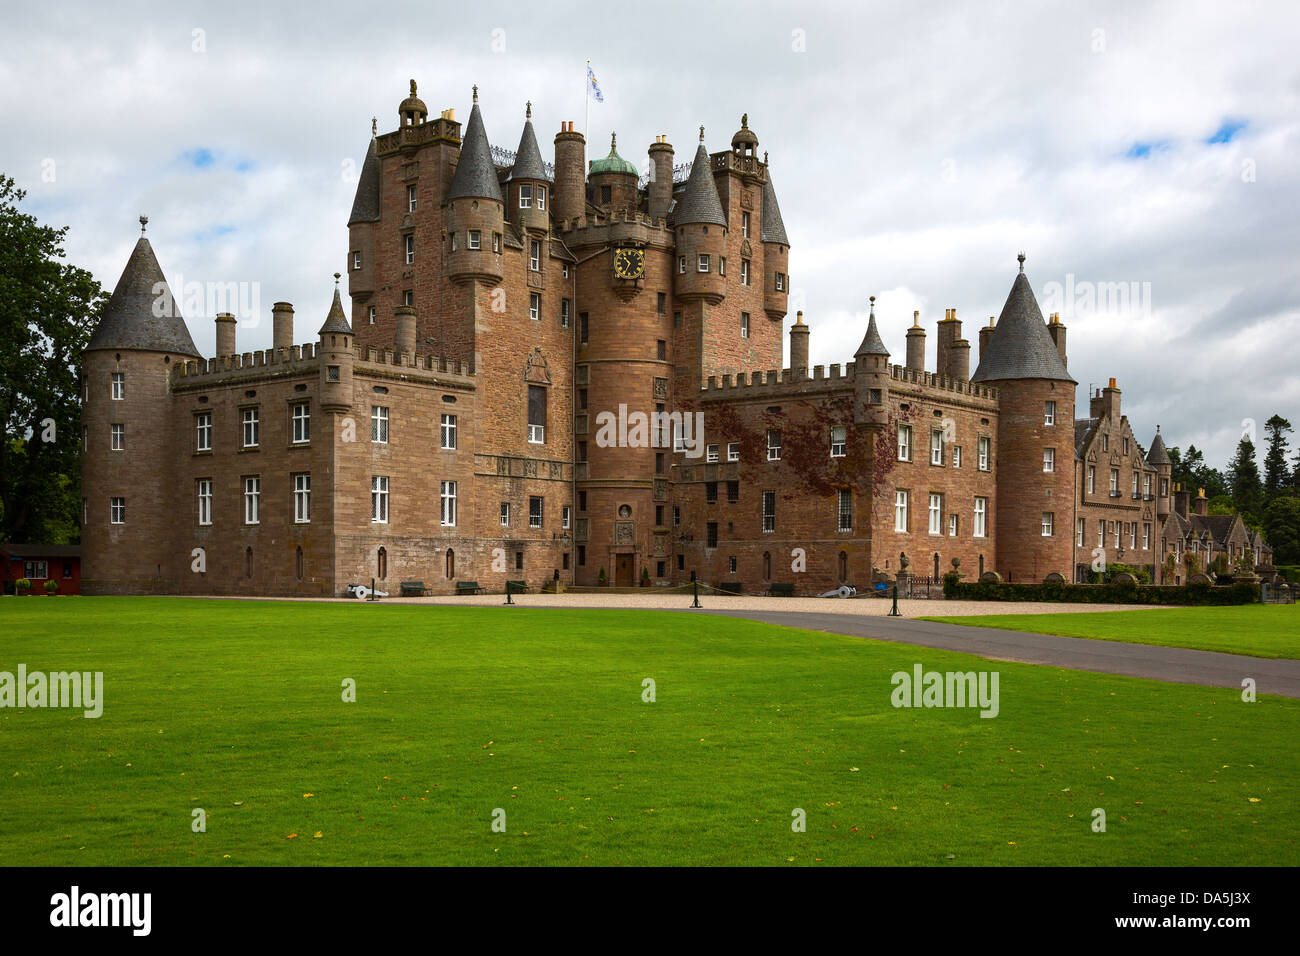 Europe Great Britain, Scotland, Fife area, Angus, the Glamis castle, childhood home of the Queen Elizabeth. - Stock Image